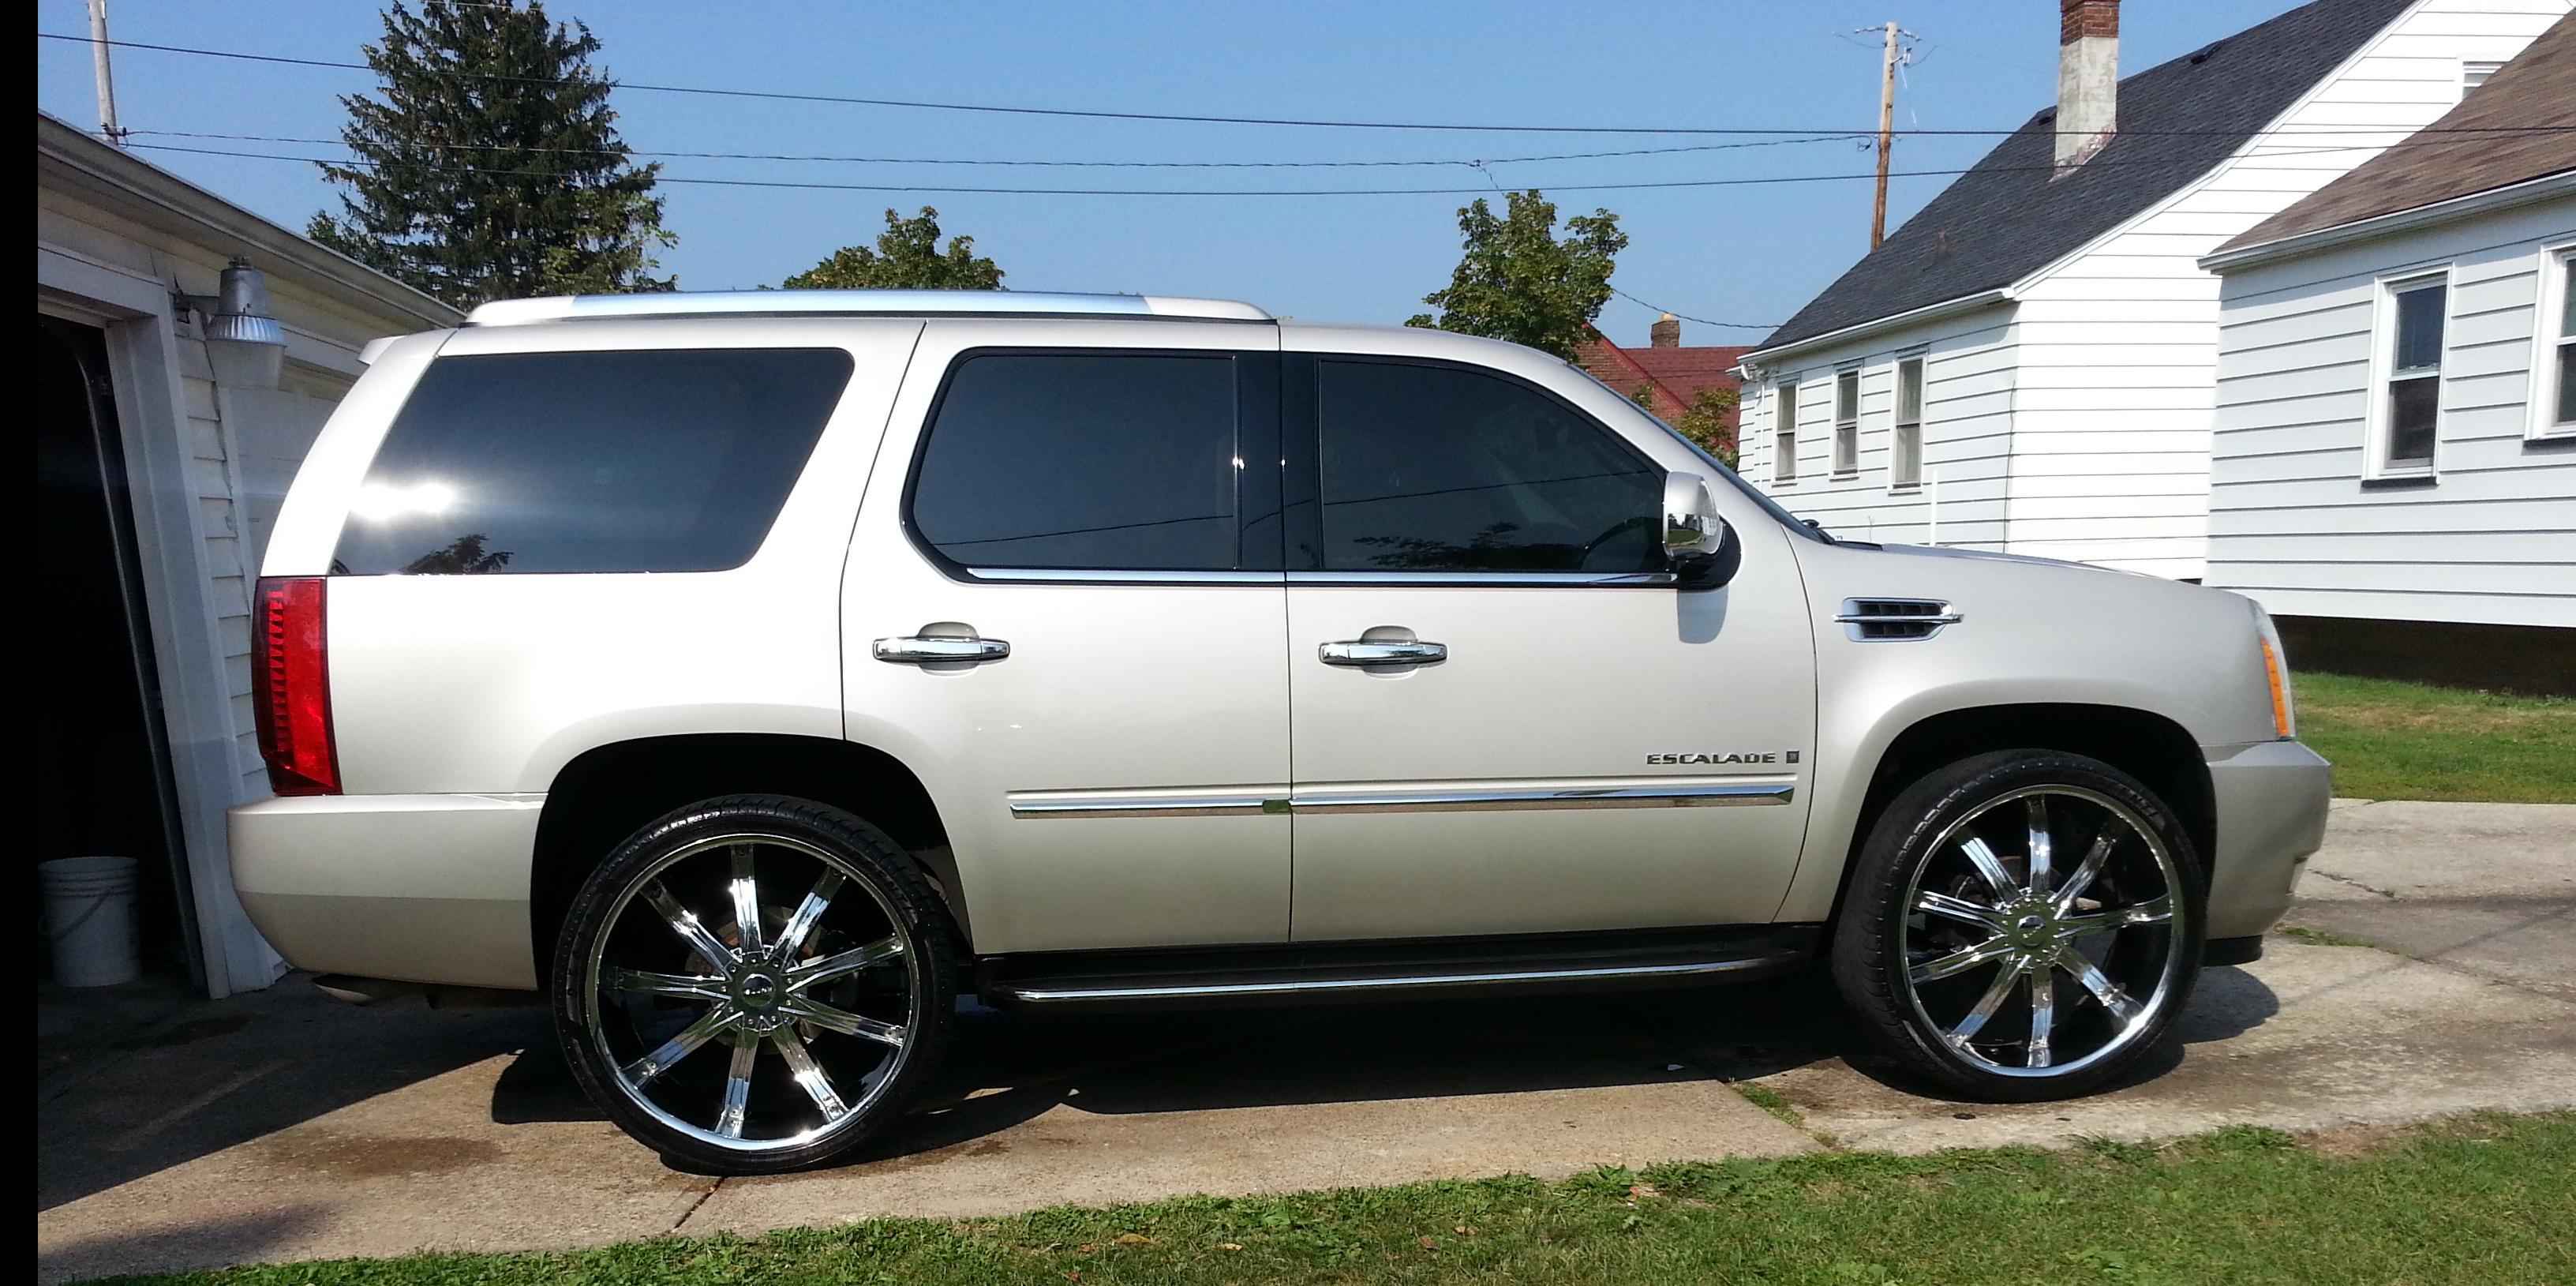 cadillac suv no accessories here pay buy credit listings check escalade